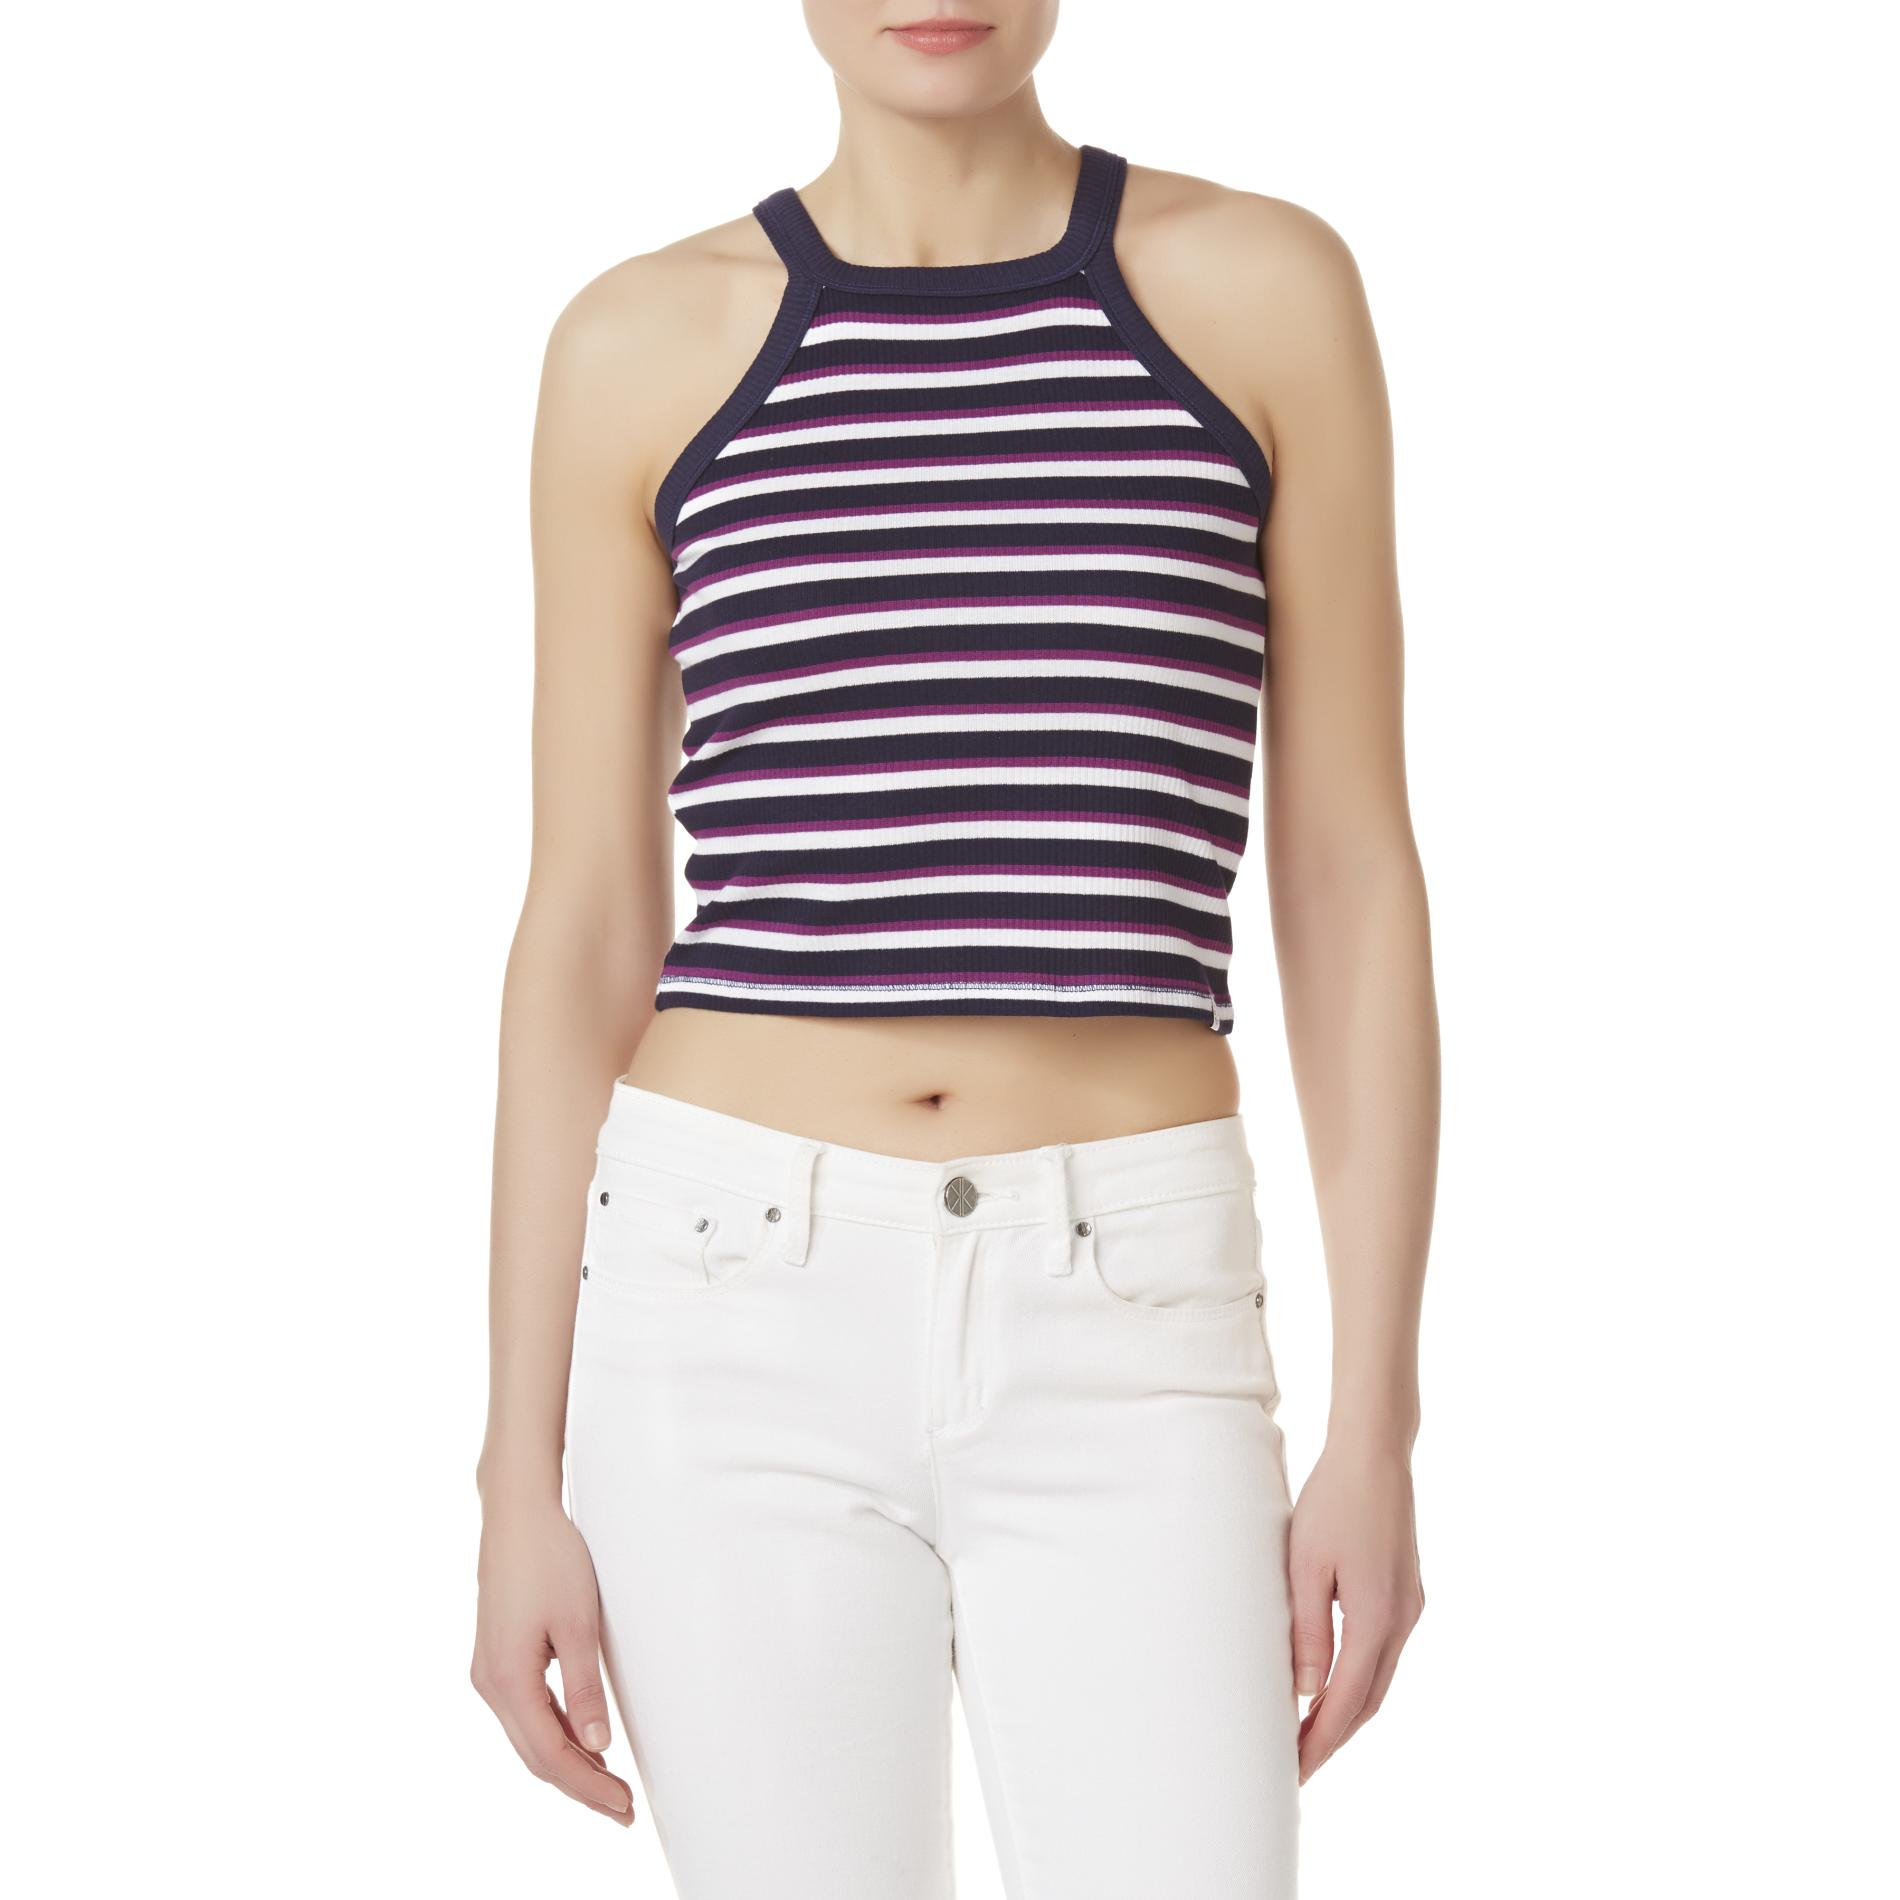 U.S. Polo Assn. Juniors' Cropped Tank Top - Striped PartNumber: A017210916 MfgPartNumber: 26-1094-ZM